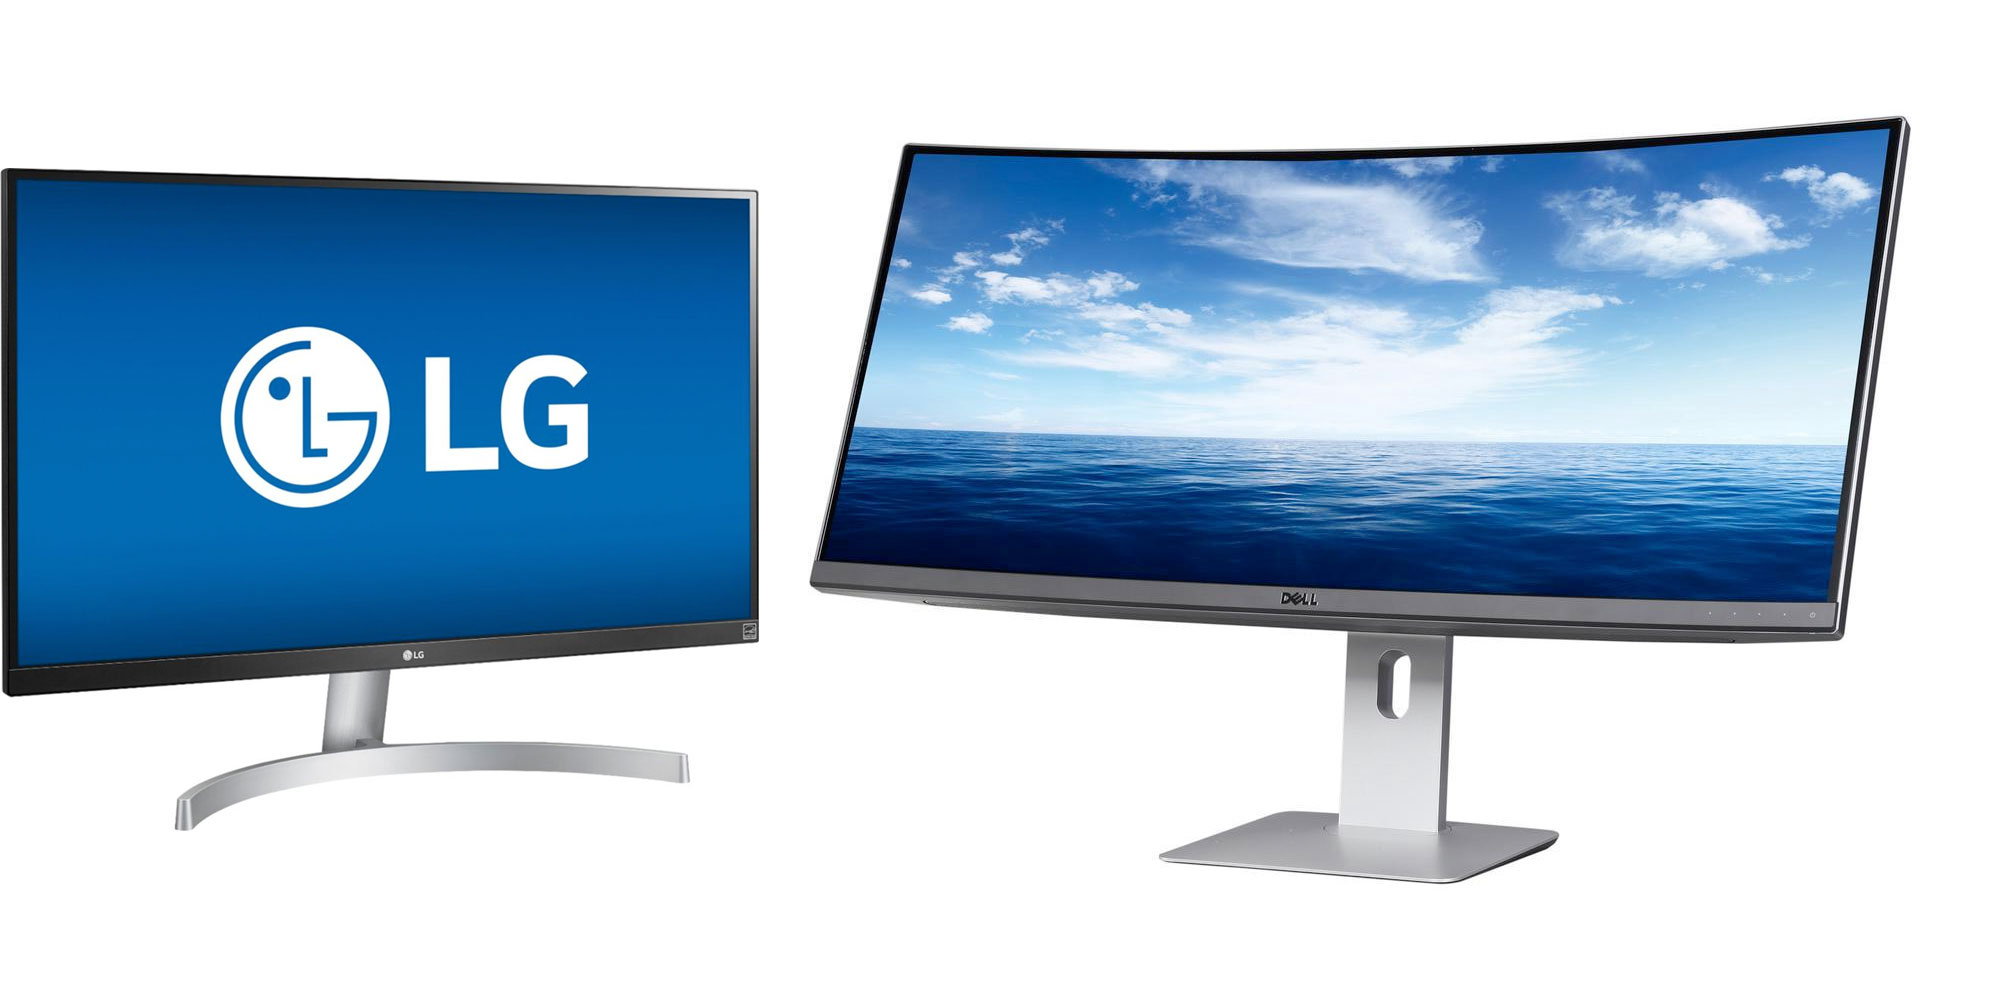 Monitors from $127.50: LG 27-inch 4K, Lenovo 24-inch 1440p, Dell 34-inch 1440p UltraWide, more